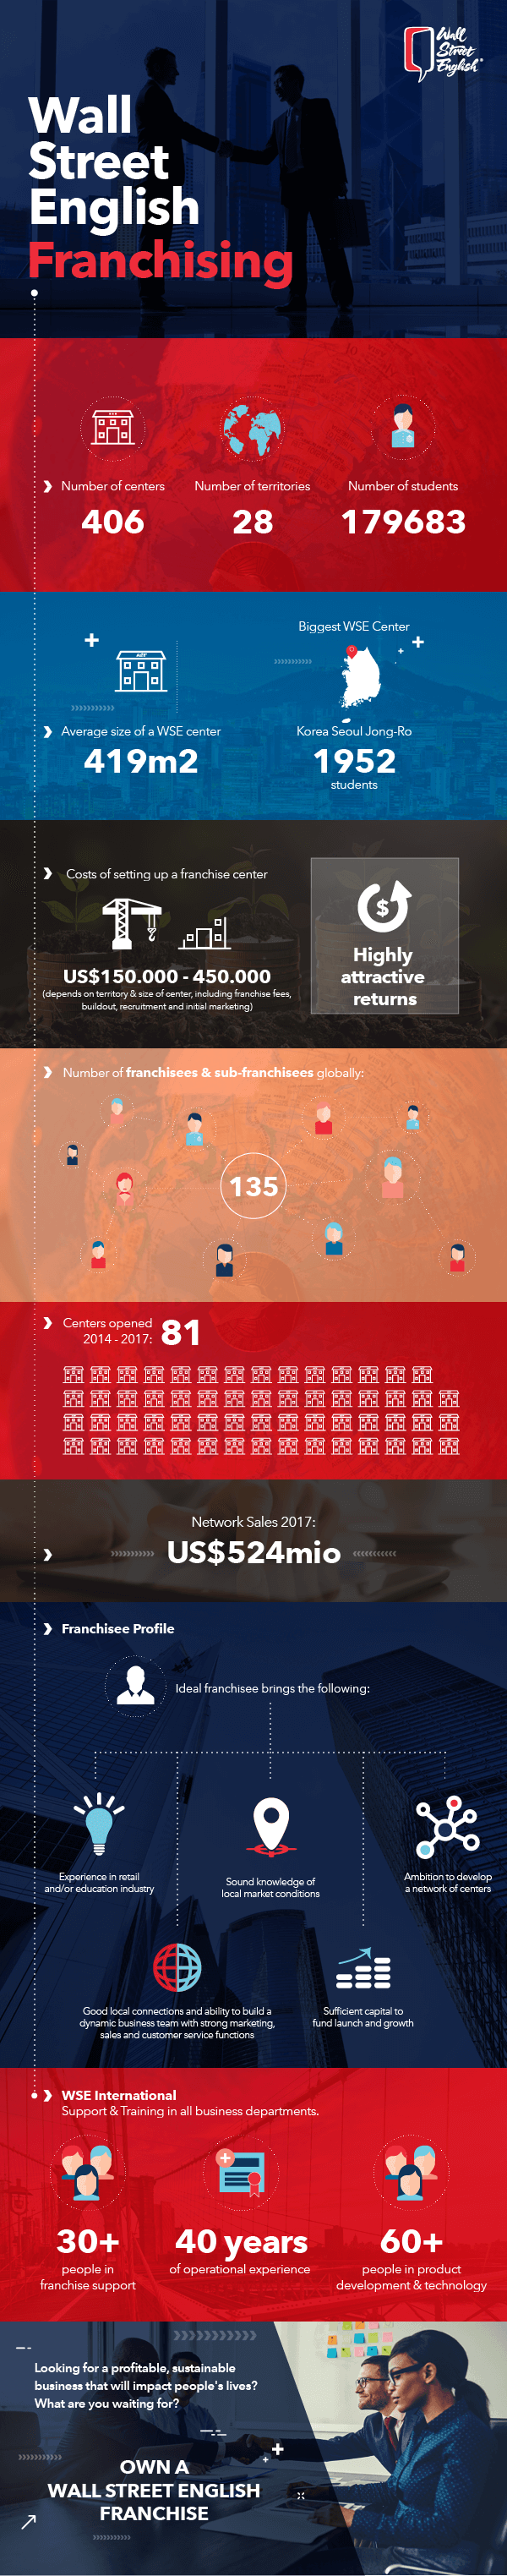 Franchising Infographic preview